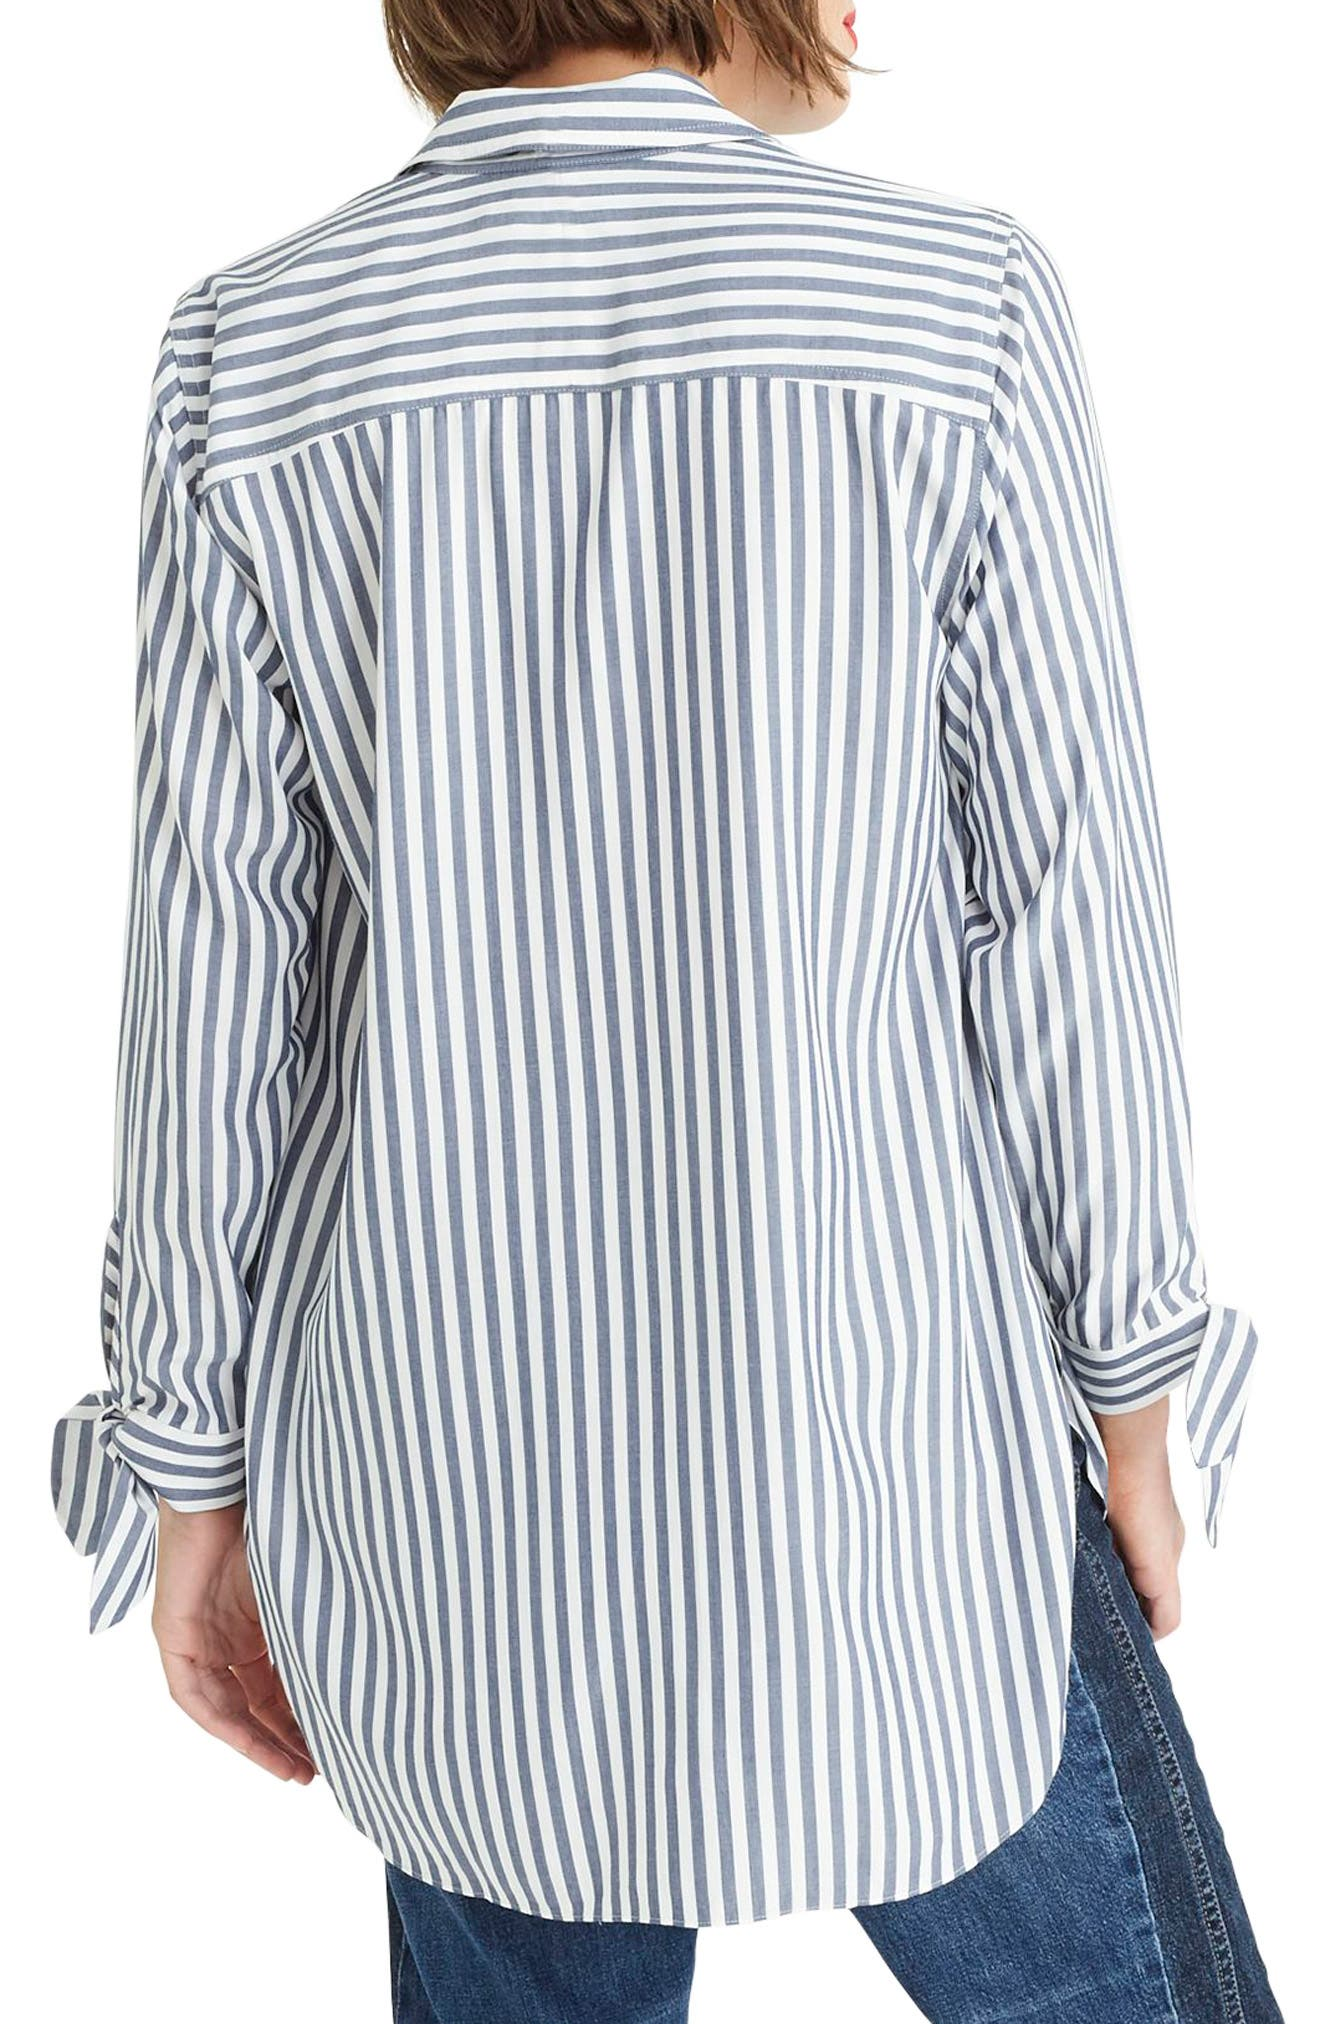 J.CREW, Collared Tie-Sleeve Popover Stripe Shirt, Alternate thumbnail 2, color, 400